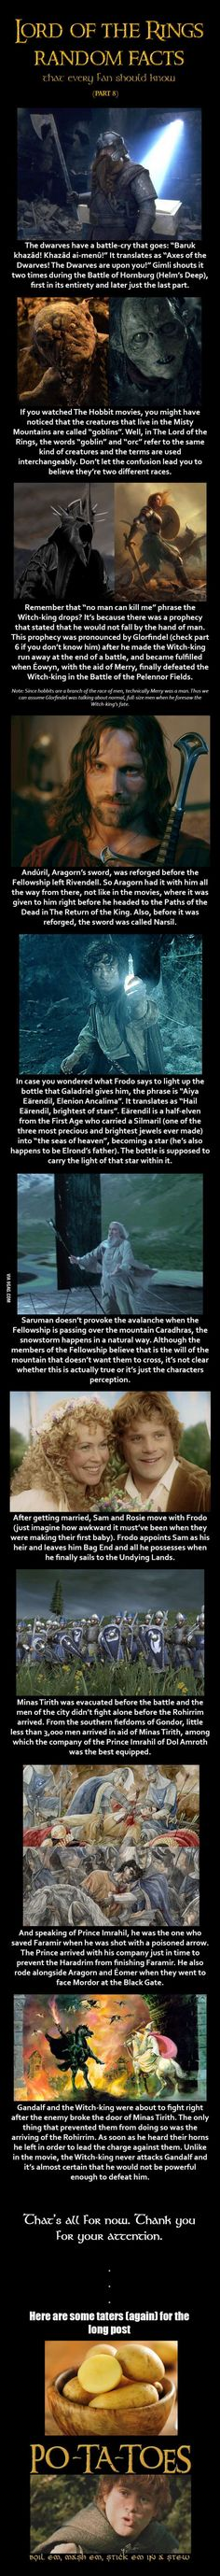 Here are some Lord of the Rings random facts (Part 8)